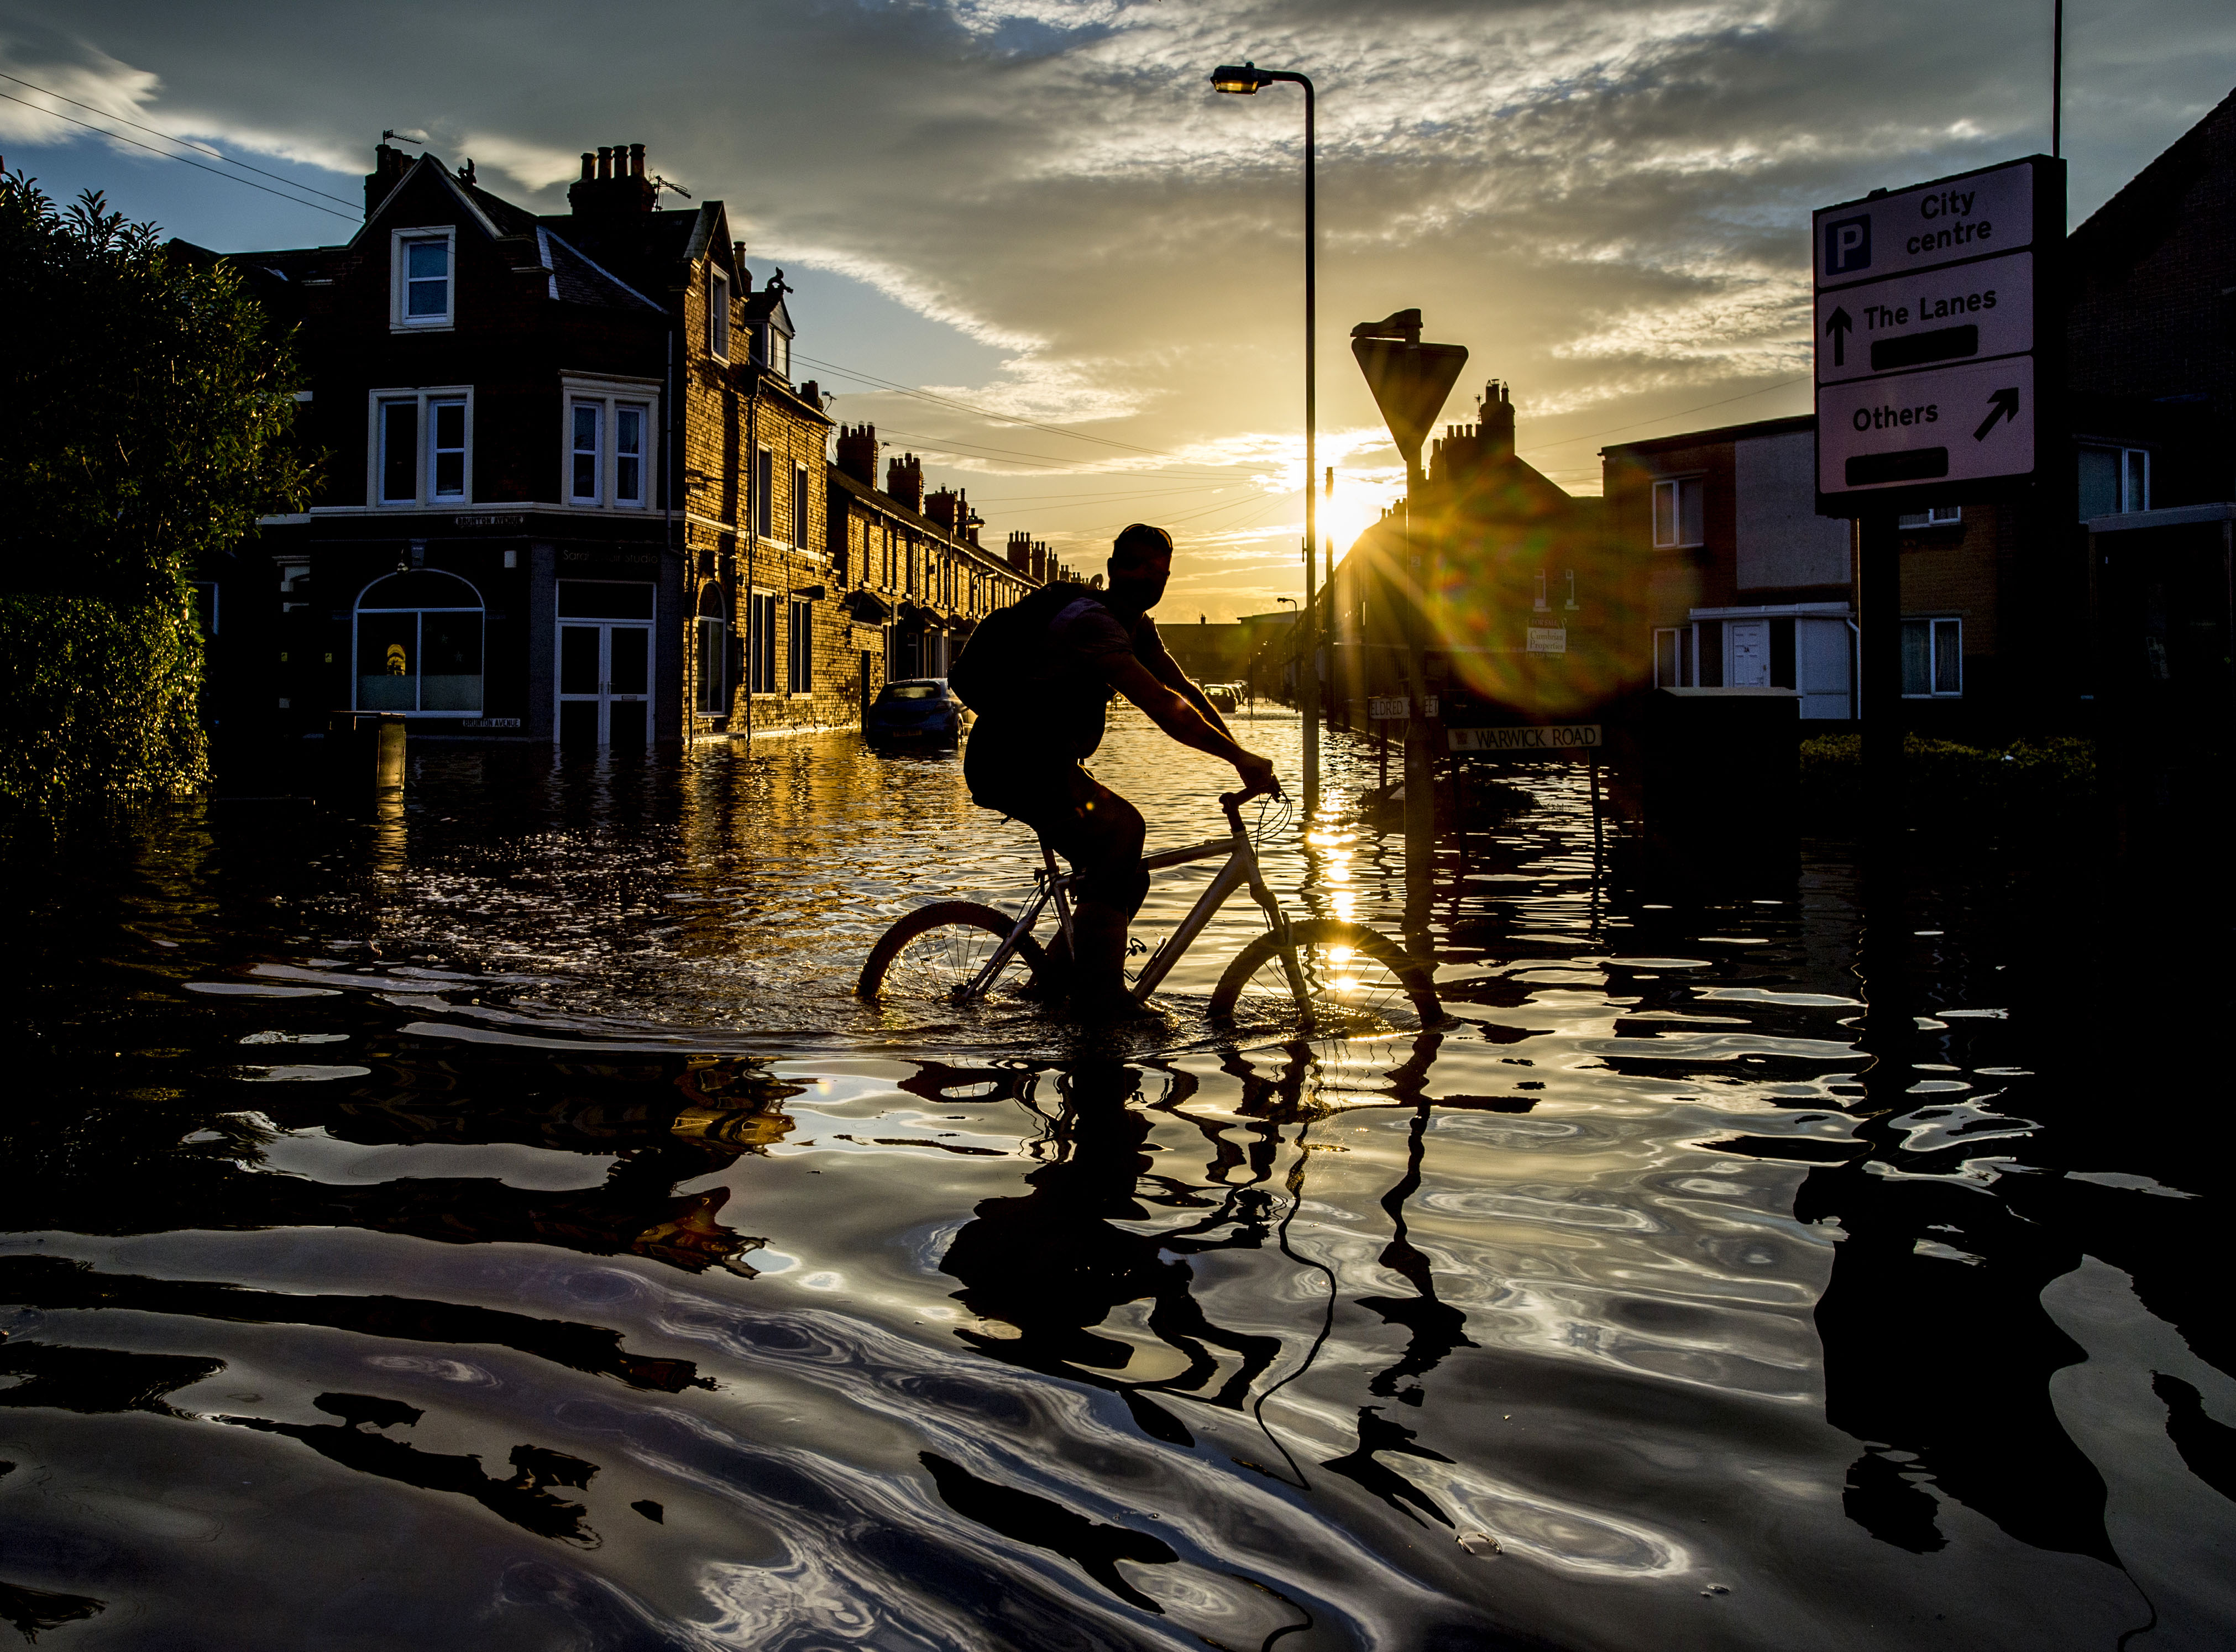 Bruce Adams - A cyclist travels through flood water along Warwick Road, Carlisle, after severe flooding across the county. December 7, 2015